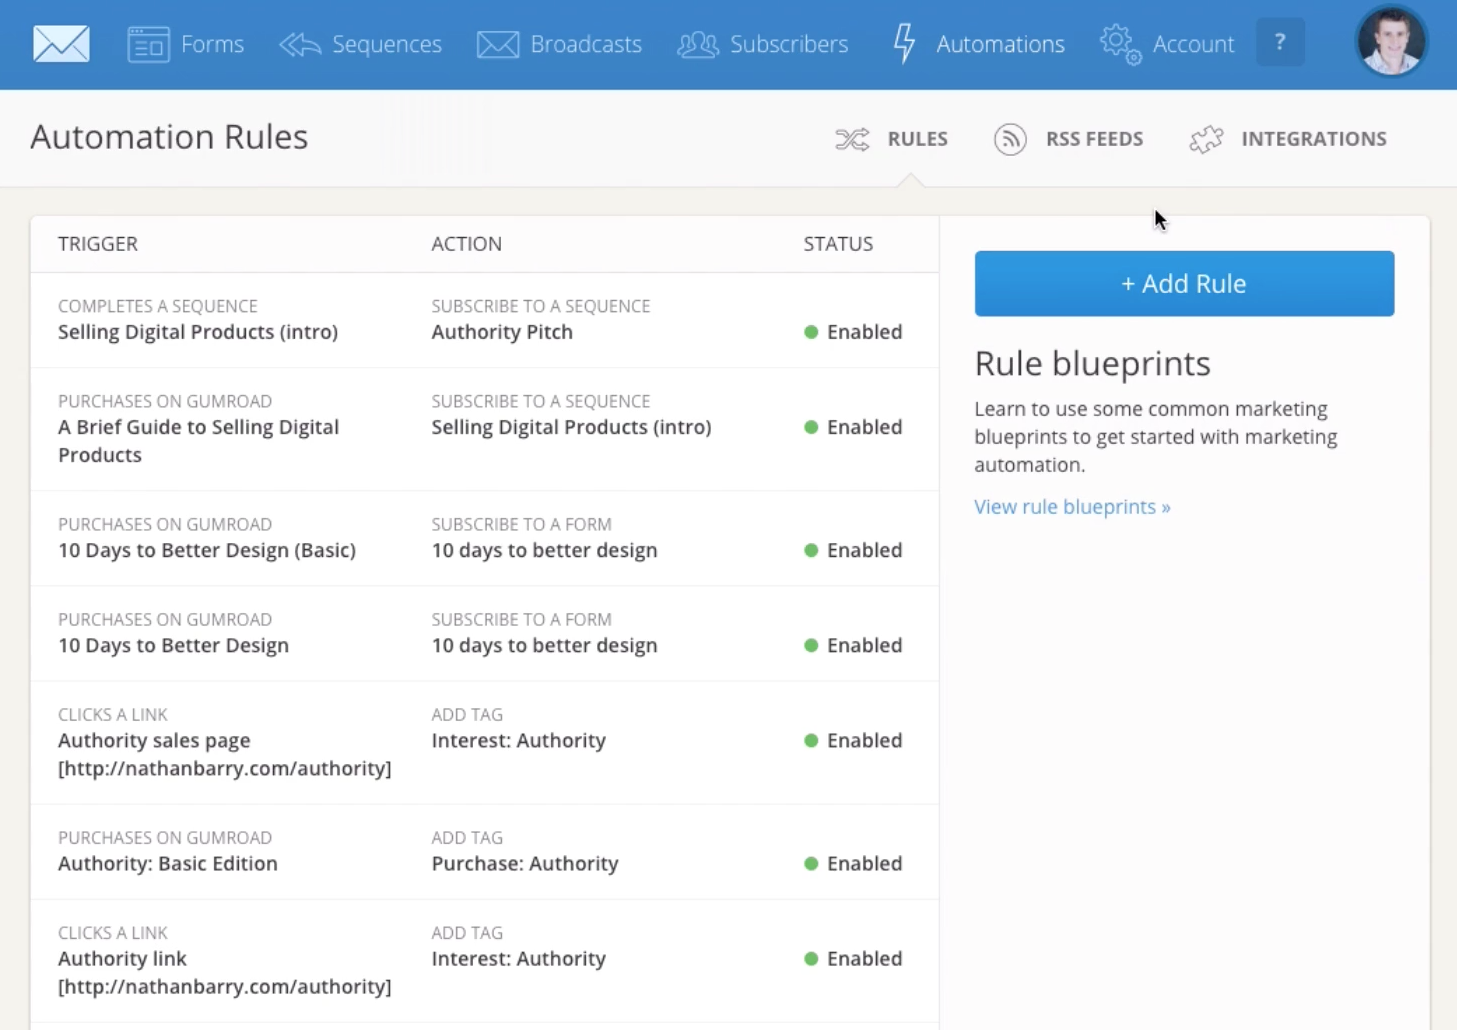 Users can add automation rules in ConvertKit to create automated workflows